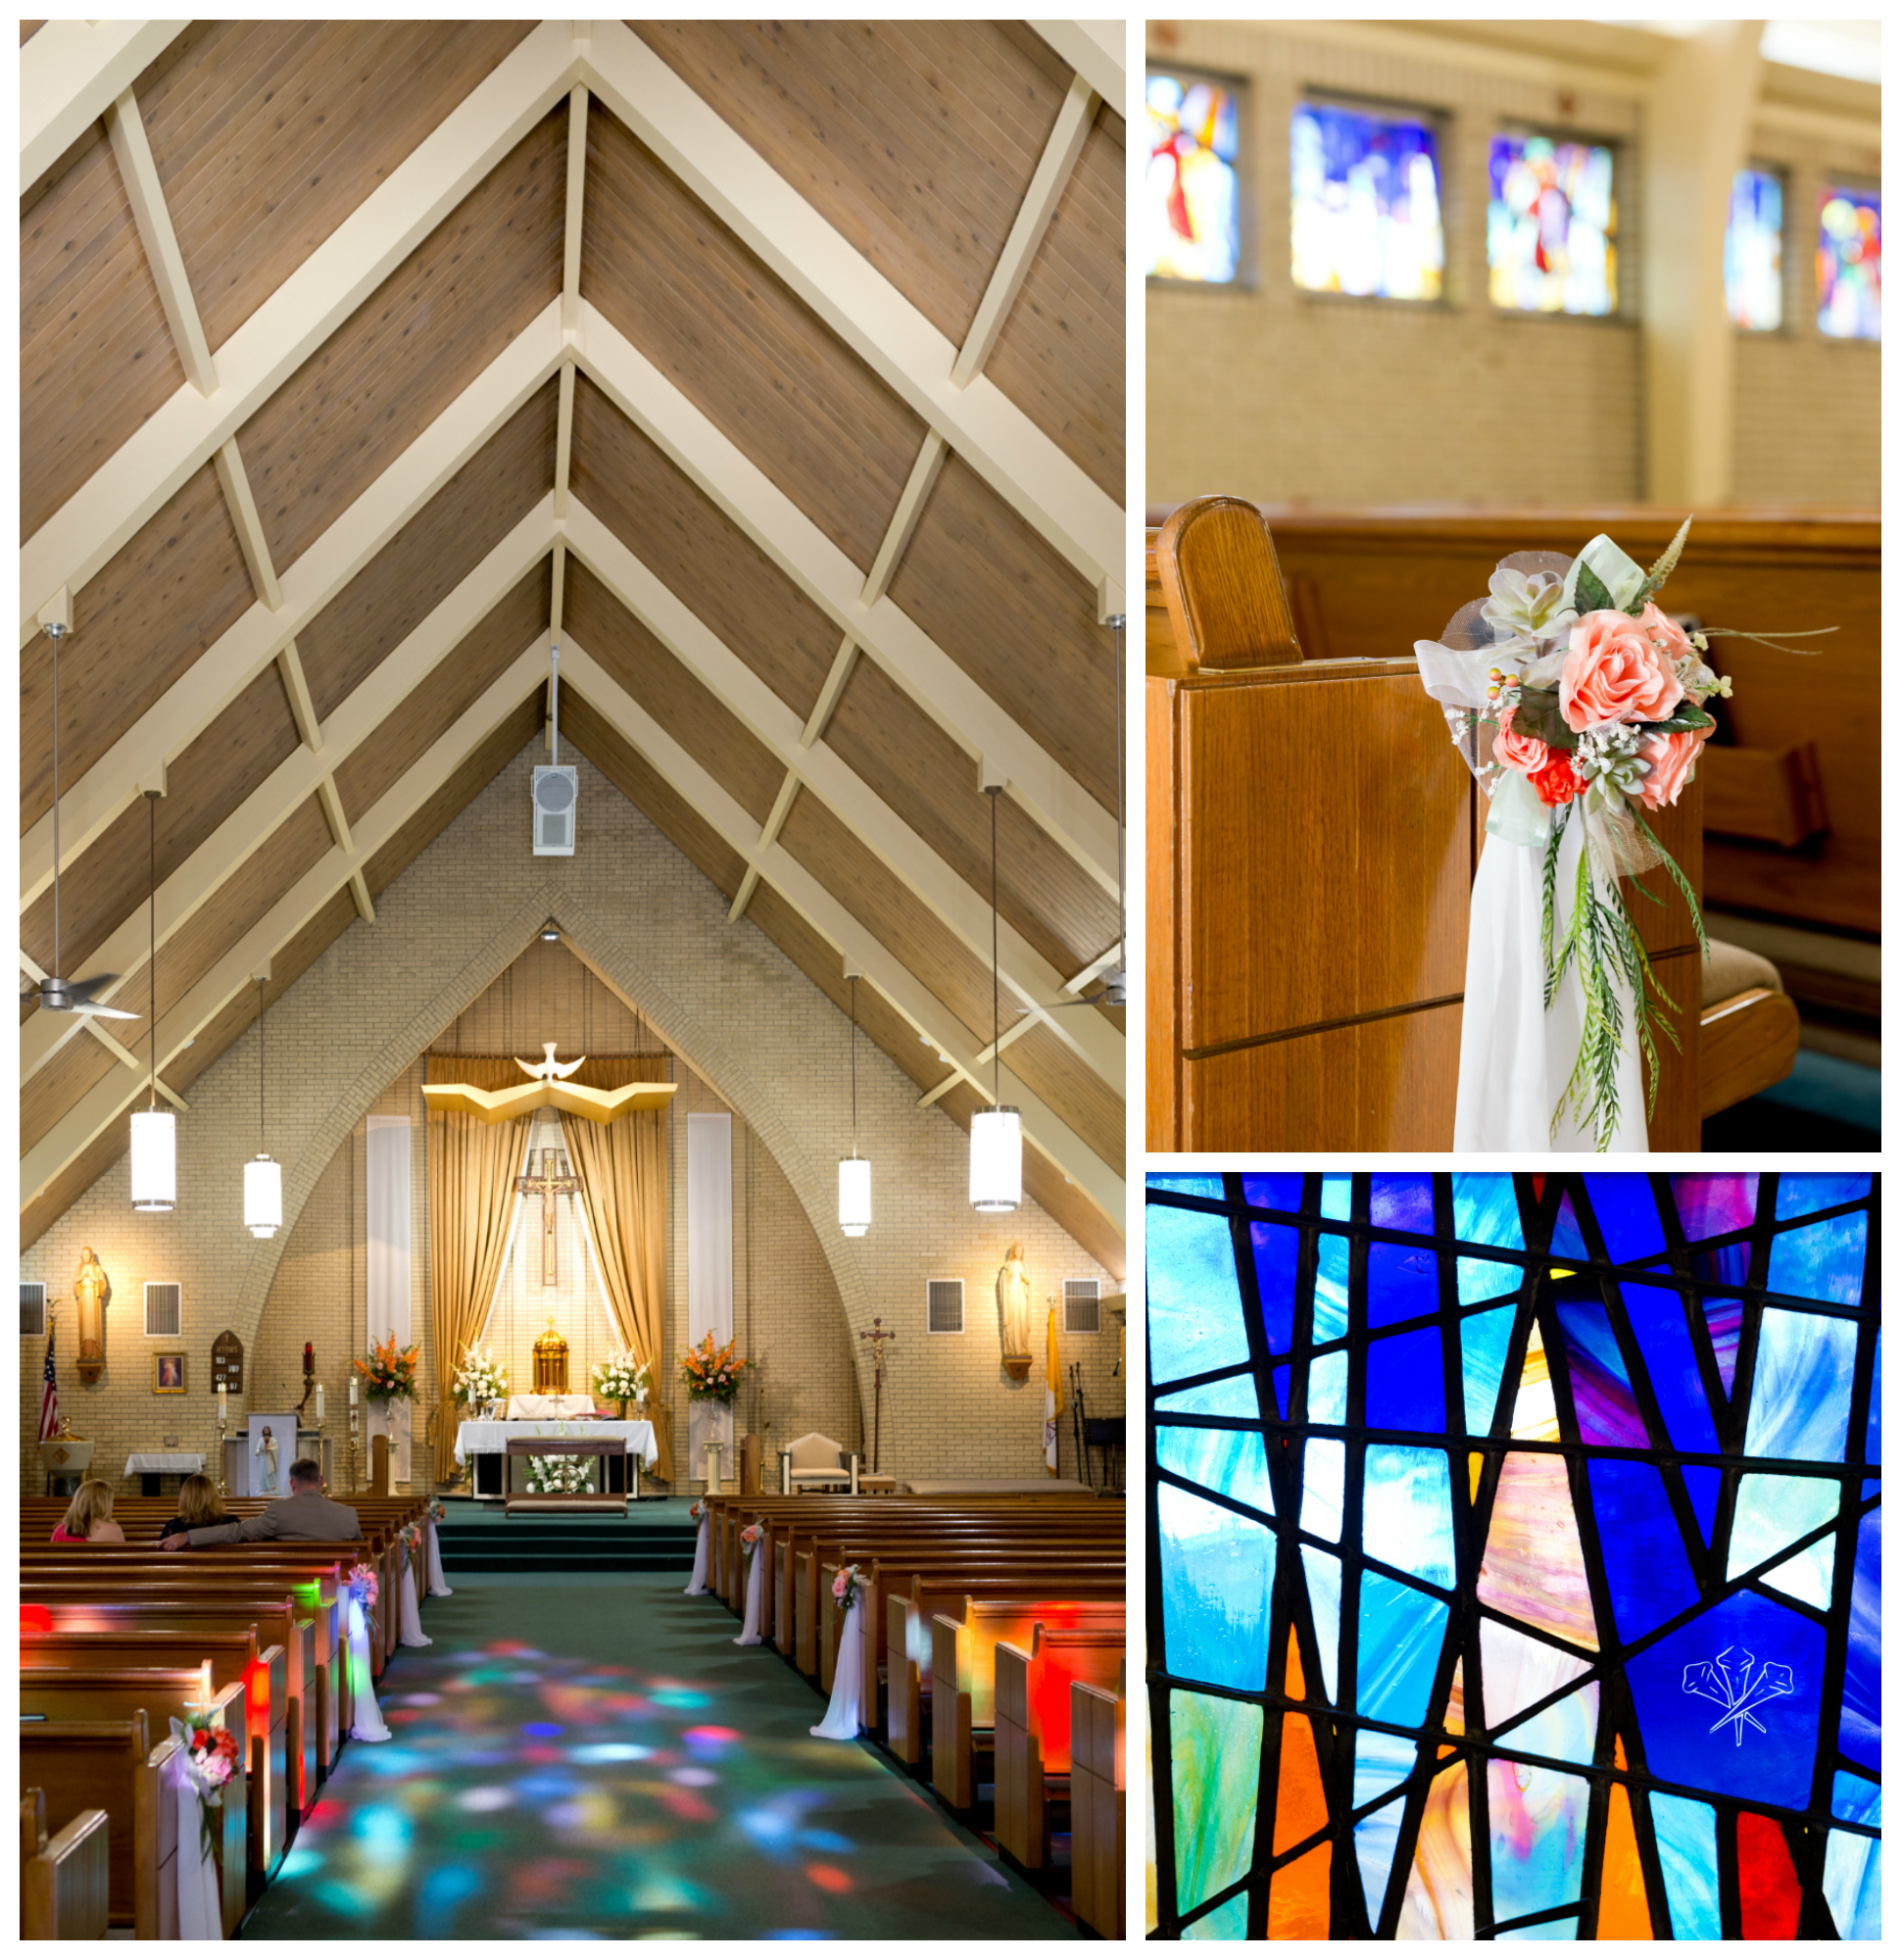 St. Alphonsus Catholic Church Ocean Springs (stained glass window light and pew with wedding decor)